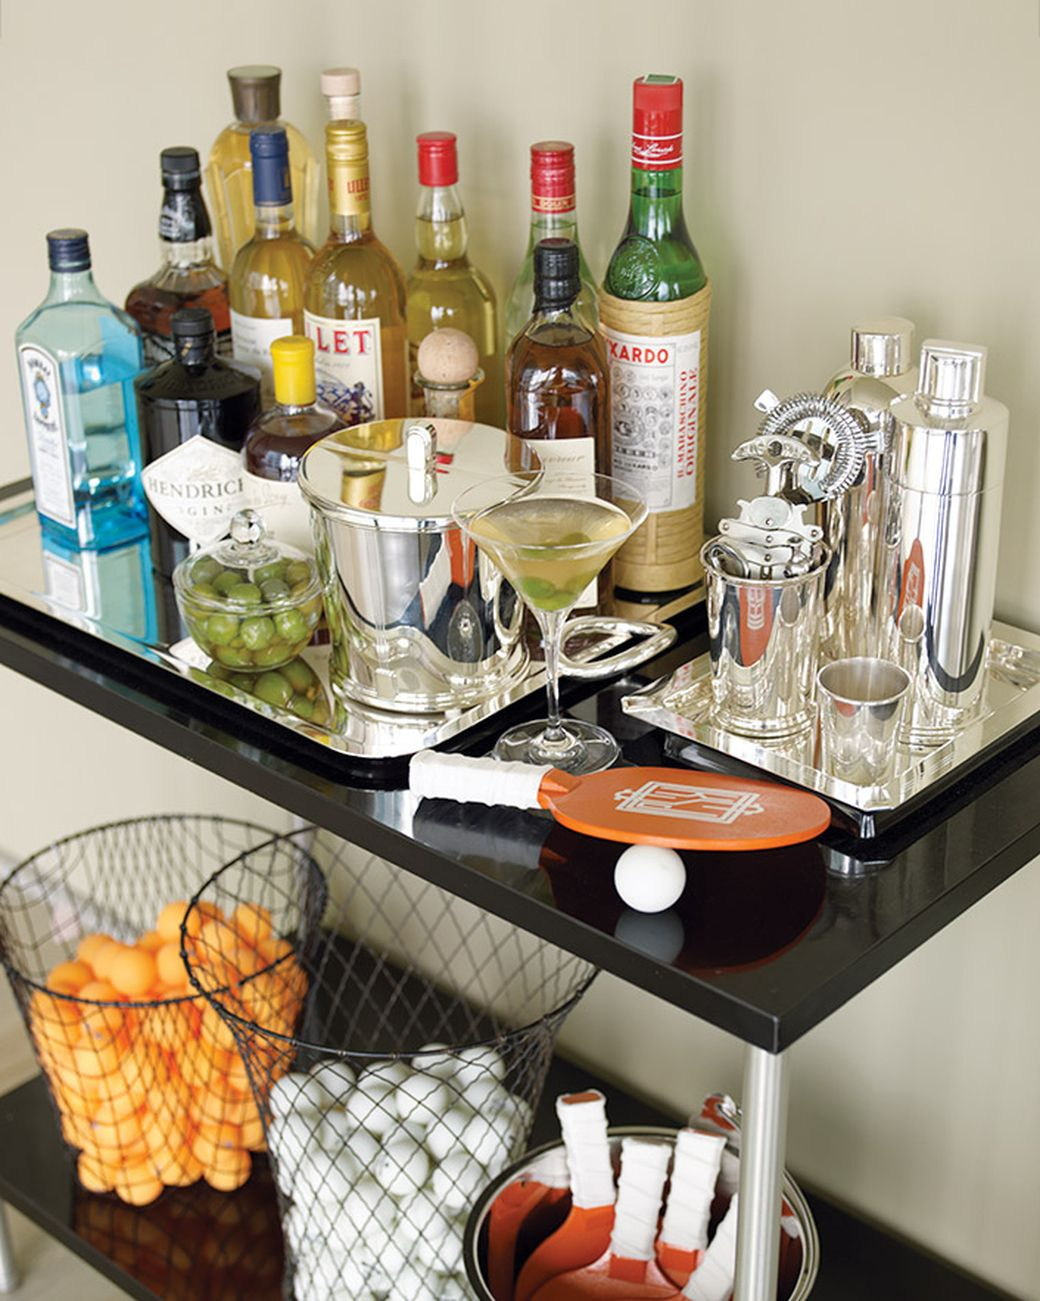 Throwing A House Party? Be Sure To Use These Tips For The Perfect Home Bar!  | Home Bar Ideas | Pinterest | Bar